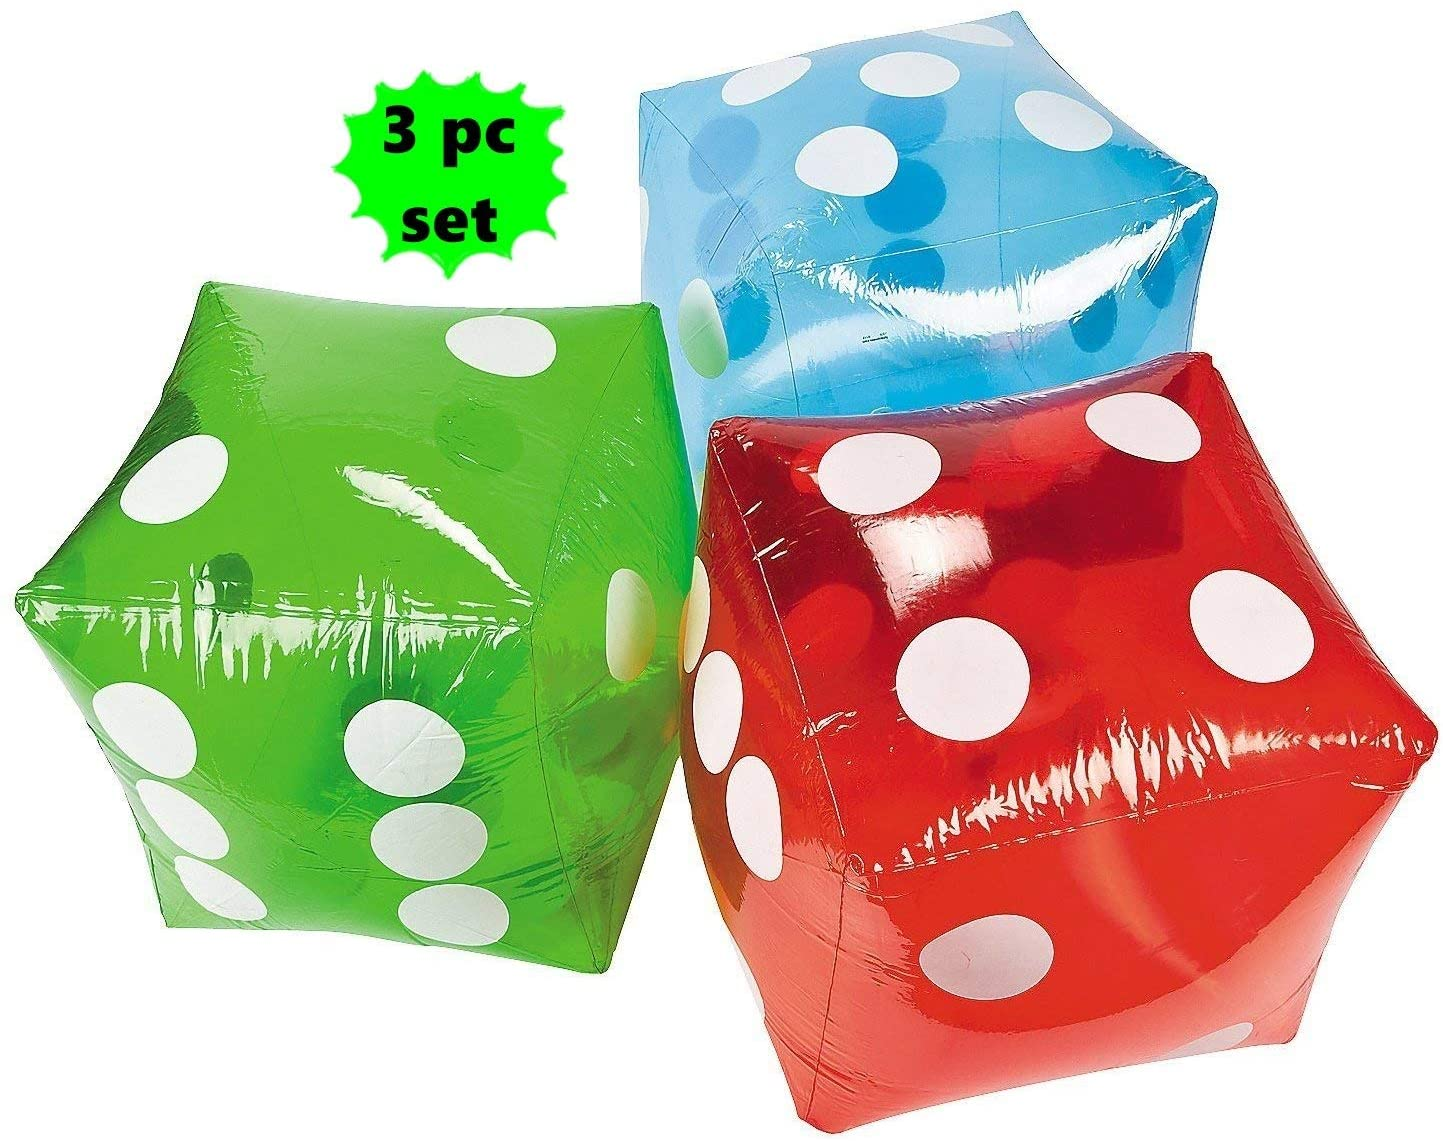 SET of 3 ~ Giant inflatable dice - 16